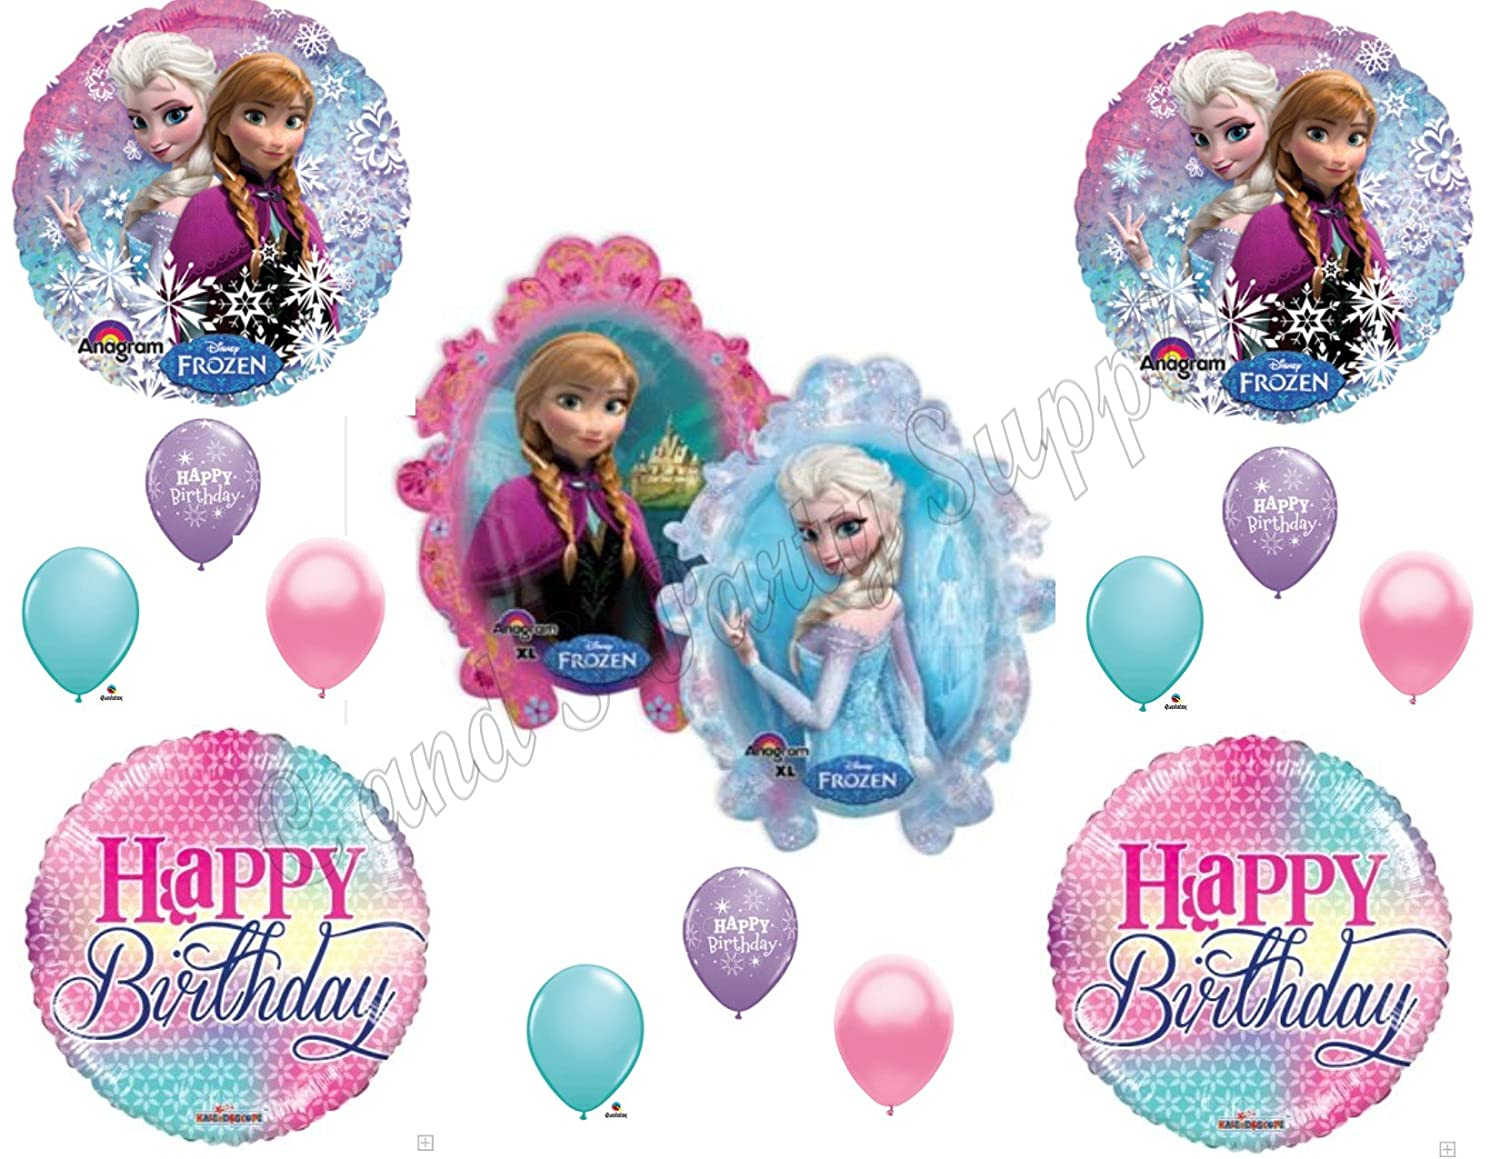 Amazon.com: Frozen Anna & Elsa Girly Globos Fiesta de ...